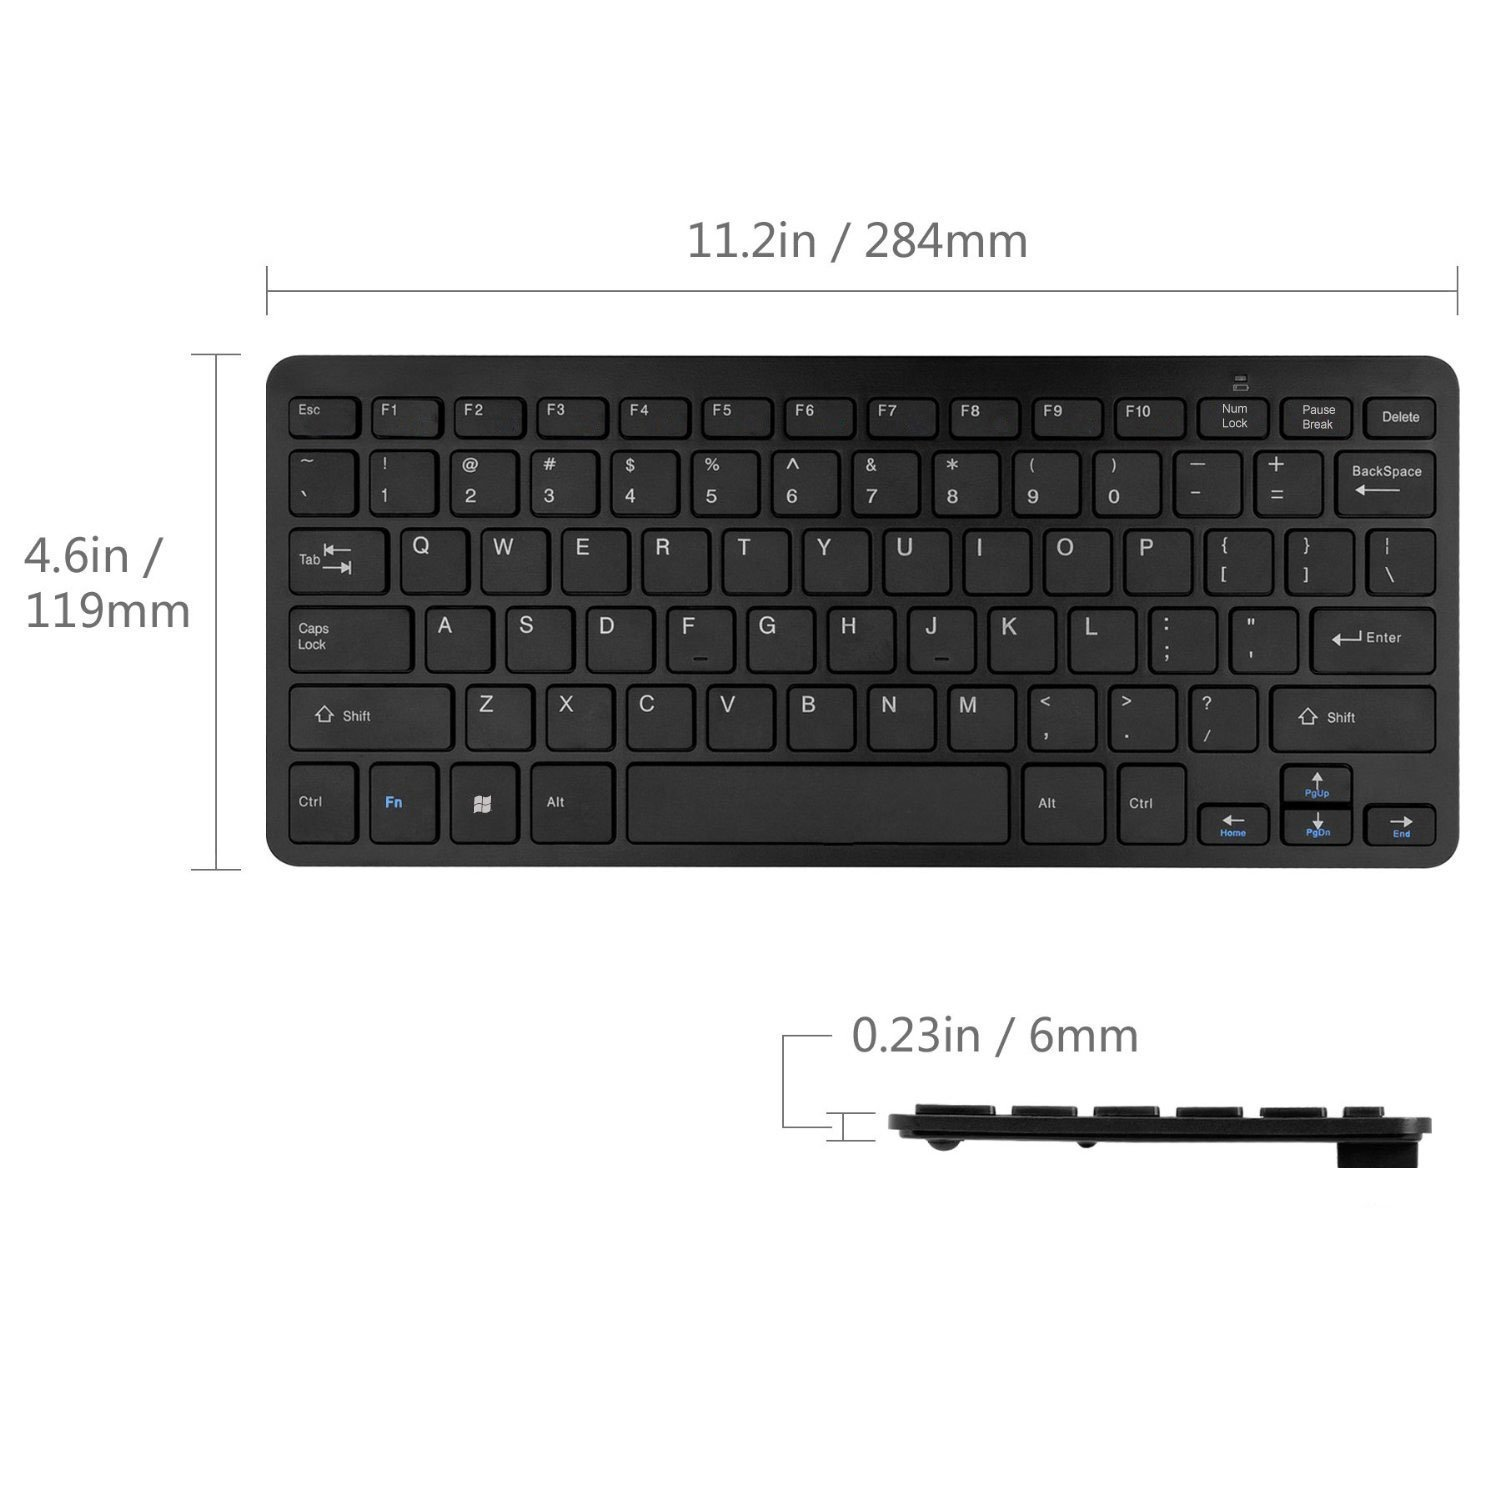 949885a5d9b Bestdeal Black Wireless Mini Ultra Slim Keyboard and Mouse for SONY Smart TV  KDL-50W807C & KDL-55W755C & KDL-43W807C & KDL-40W705C & KDL32R433: ...